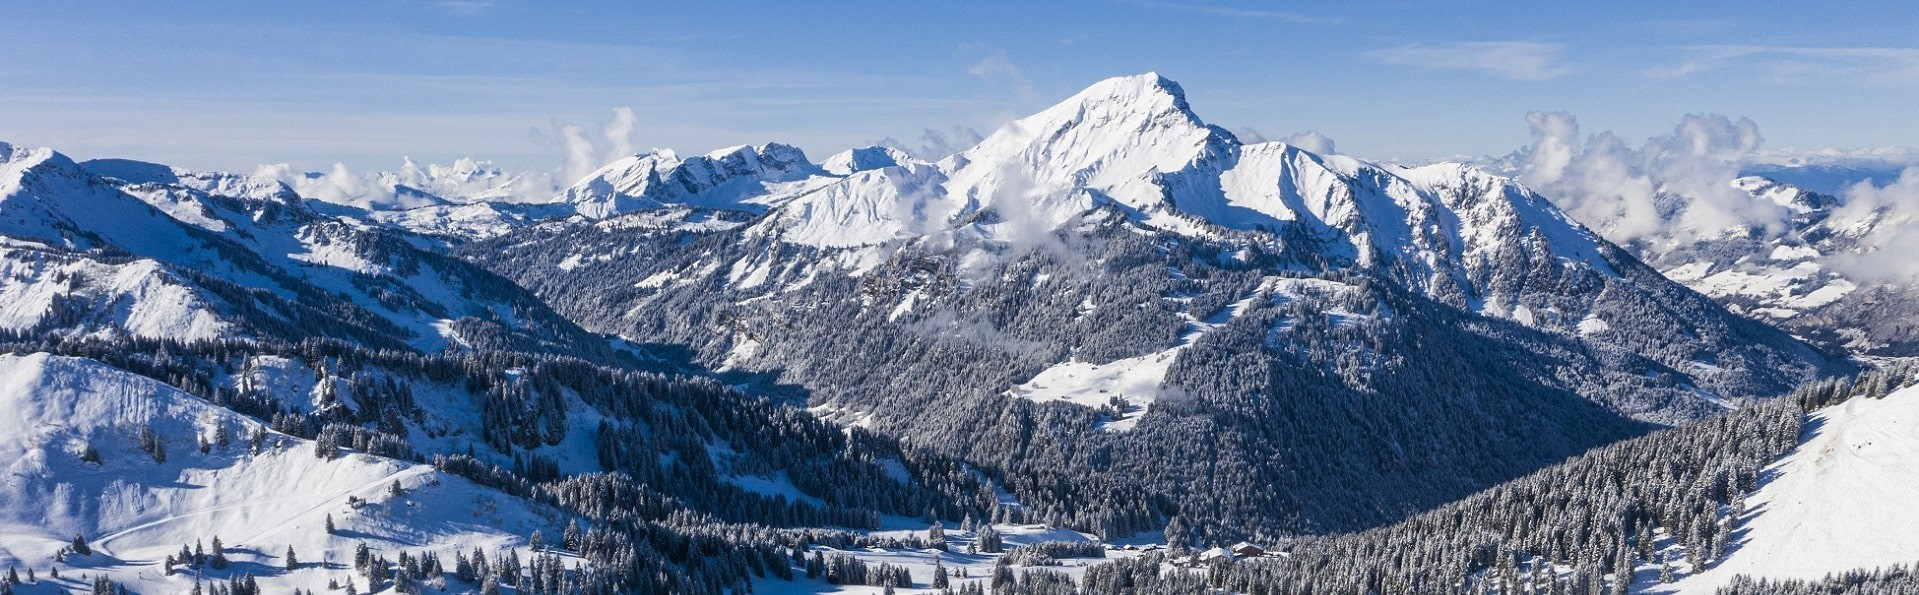 Mountains and snow arount Chatel France